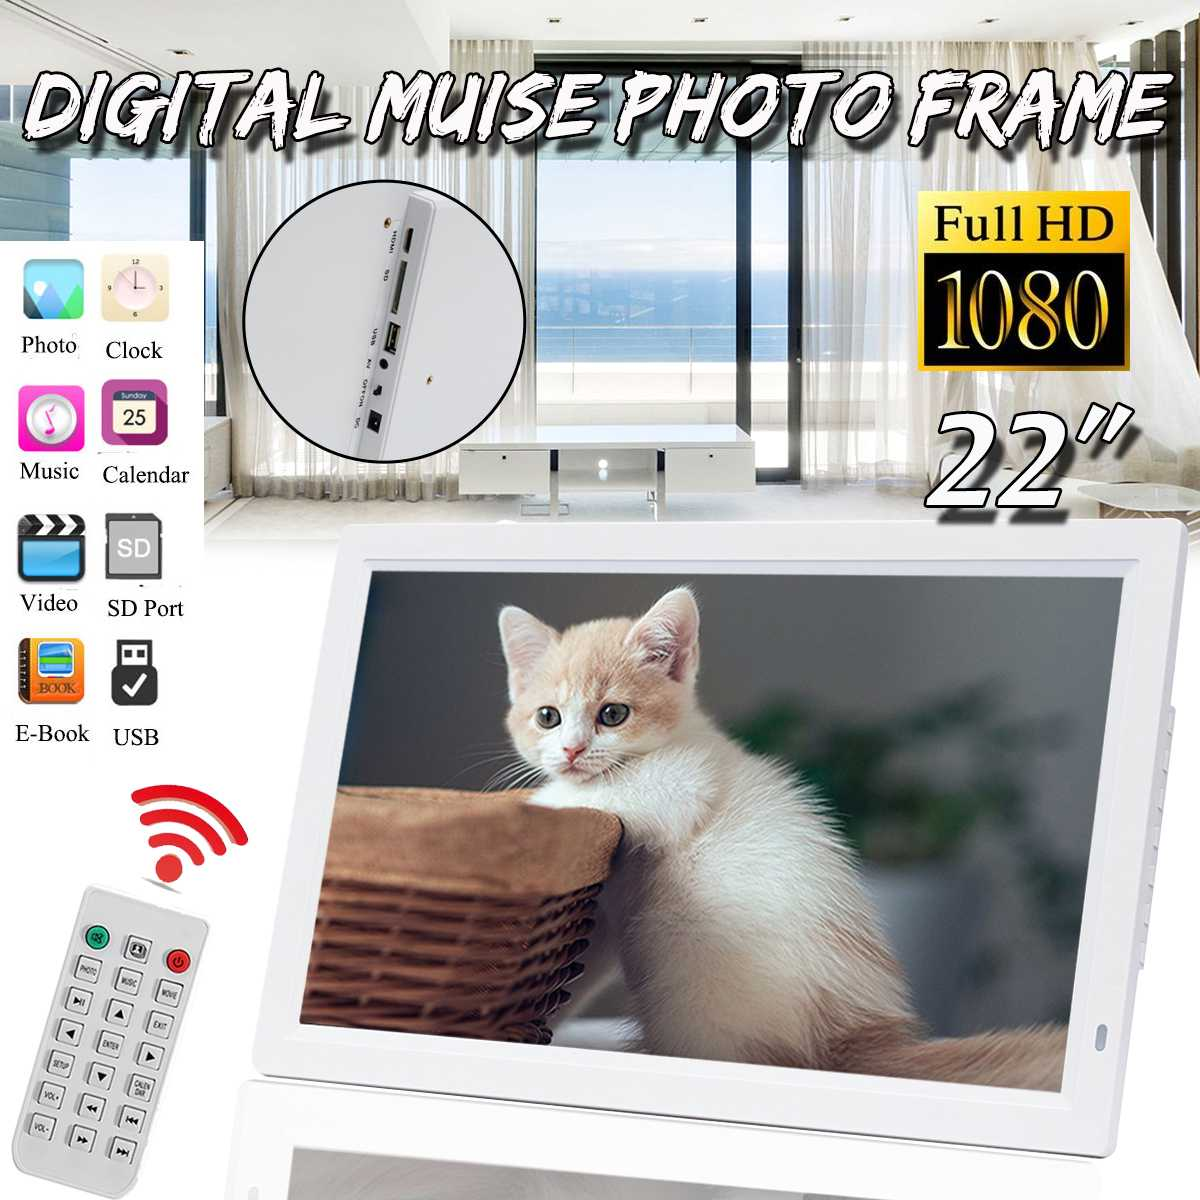 22 Inch 1080Px1920P Digital Photo Frame HD Advertising Machine U Disk SD Electronic Album Digitale Picture Music MP3 MP4 Player